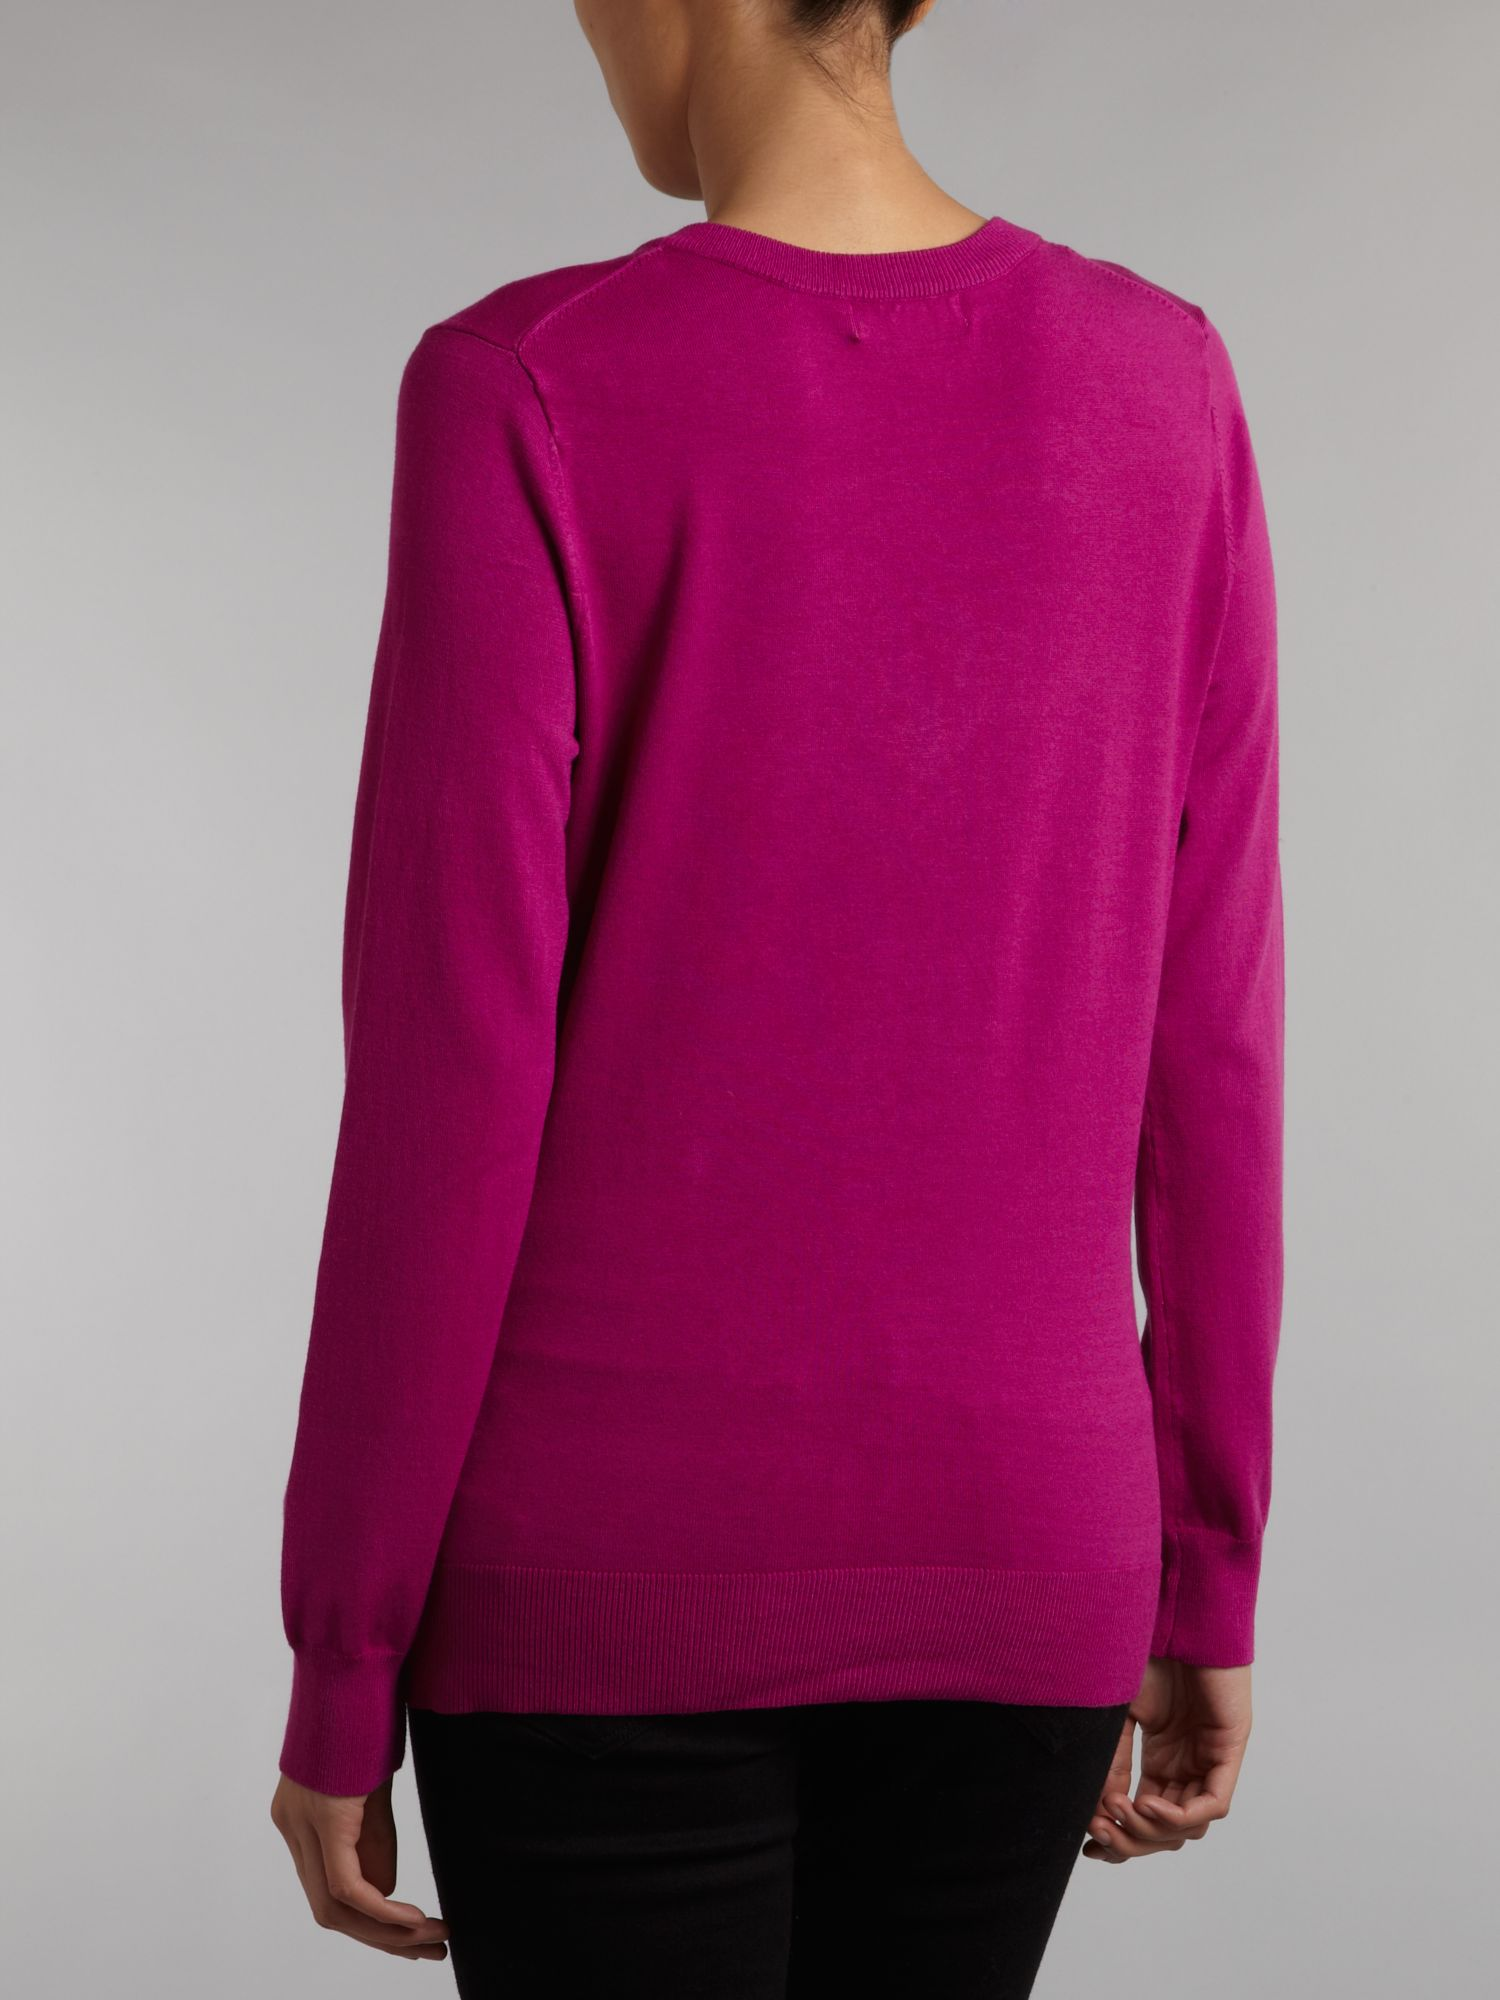 Long sleeve pullover with neck tie